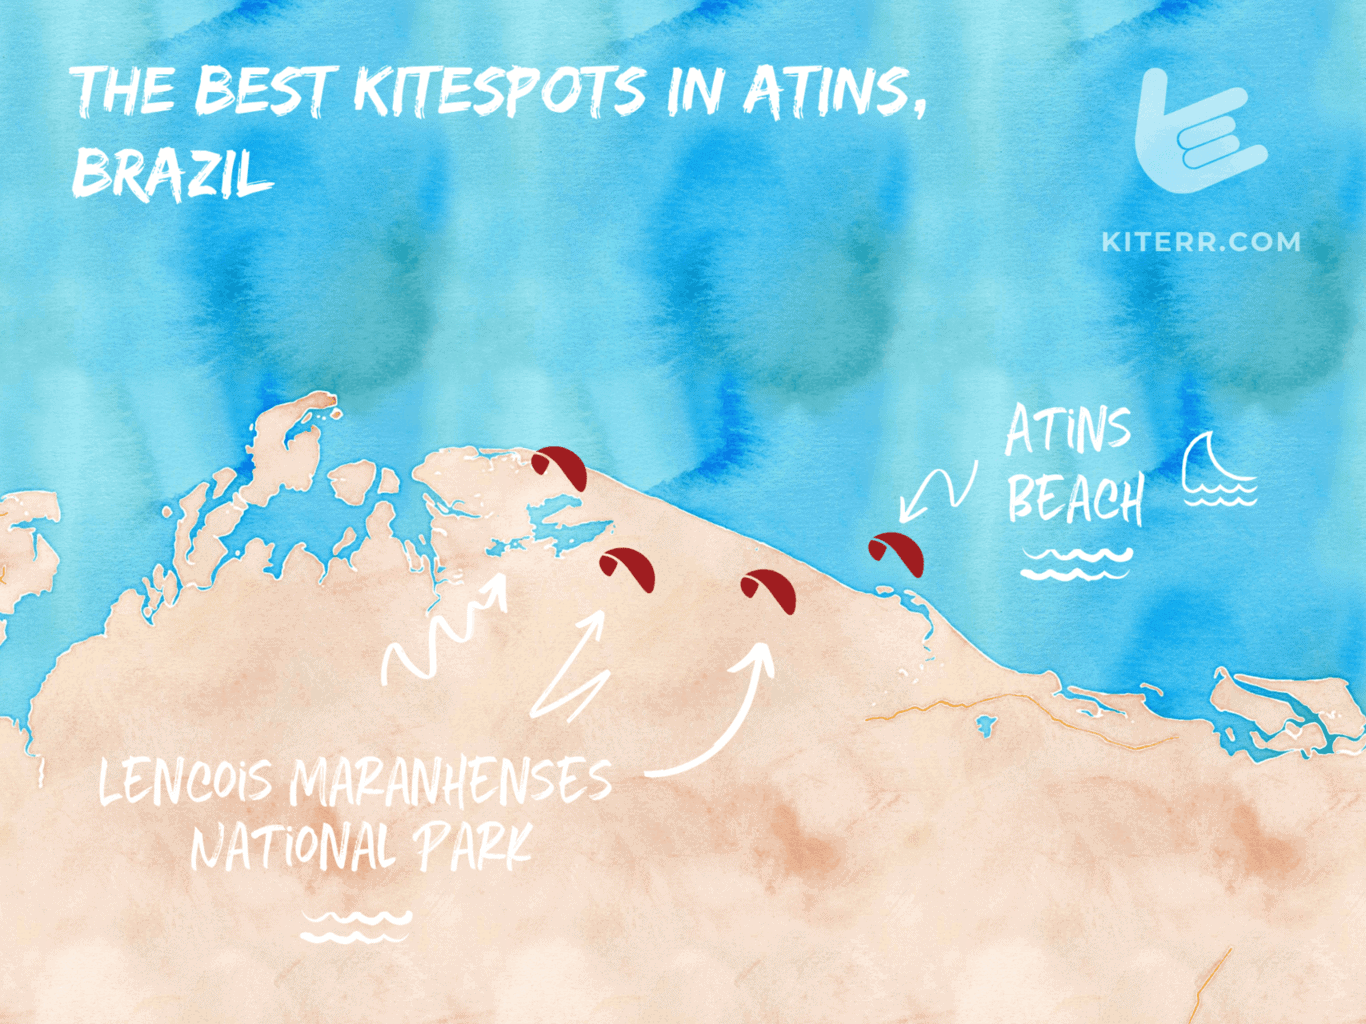 The best kitesurfing spots in Brazil - Atins - map & spot guide // Kiterr.com